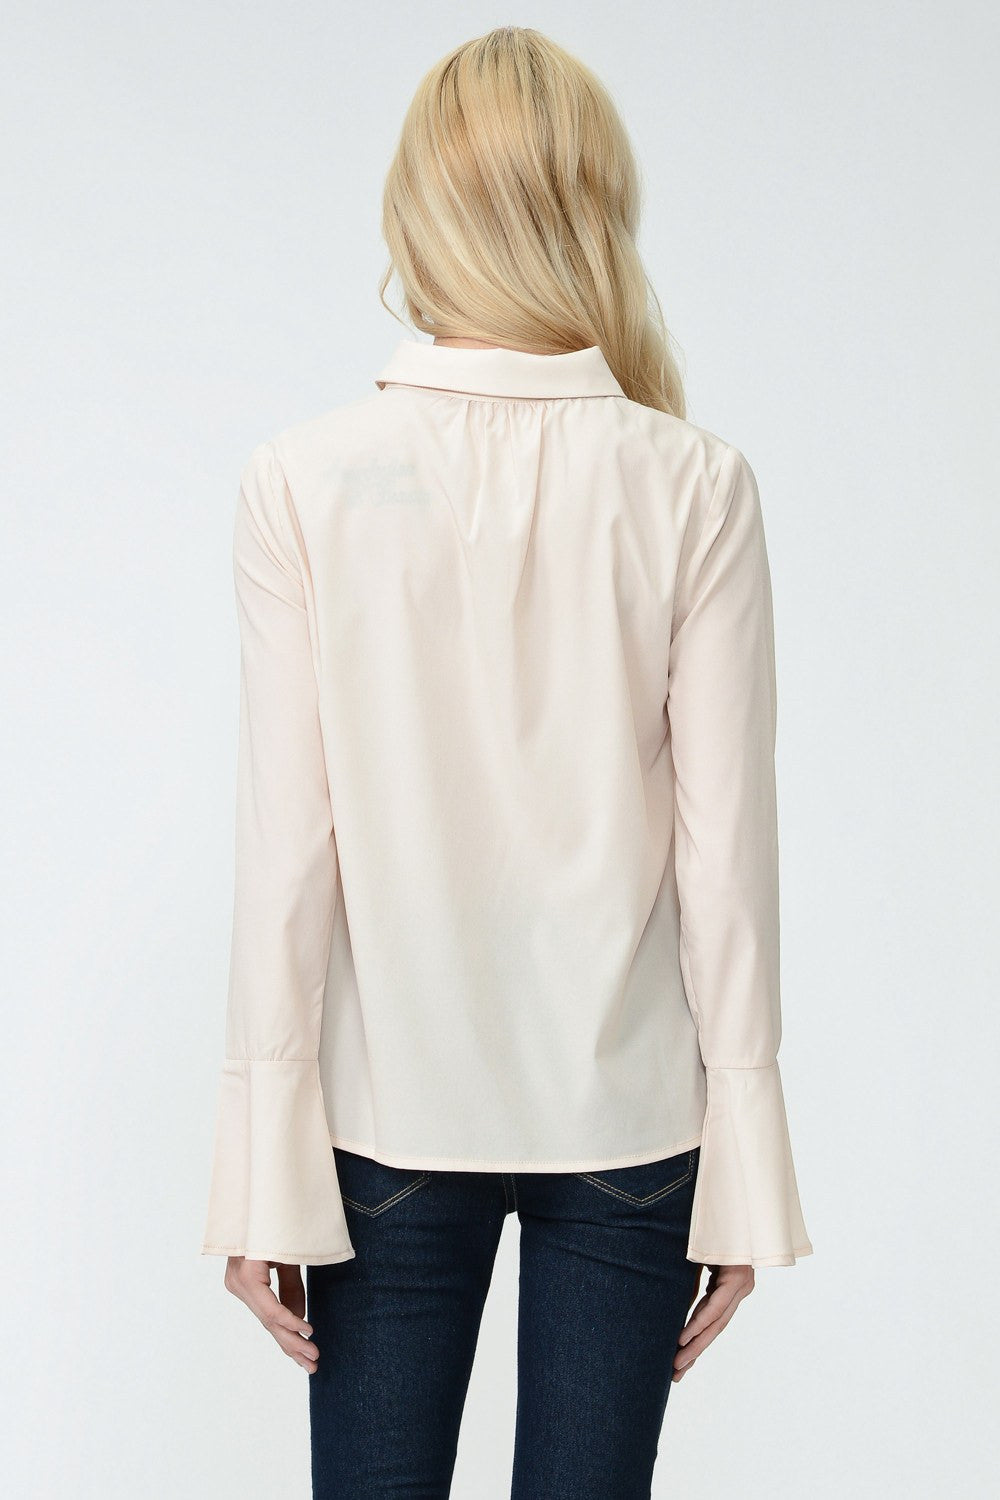 Champagne Chiffon Blouse with Tie